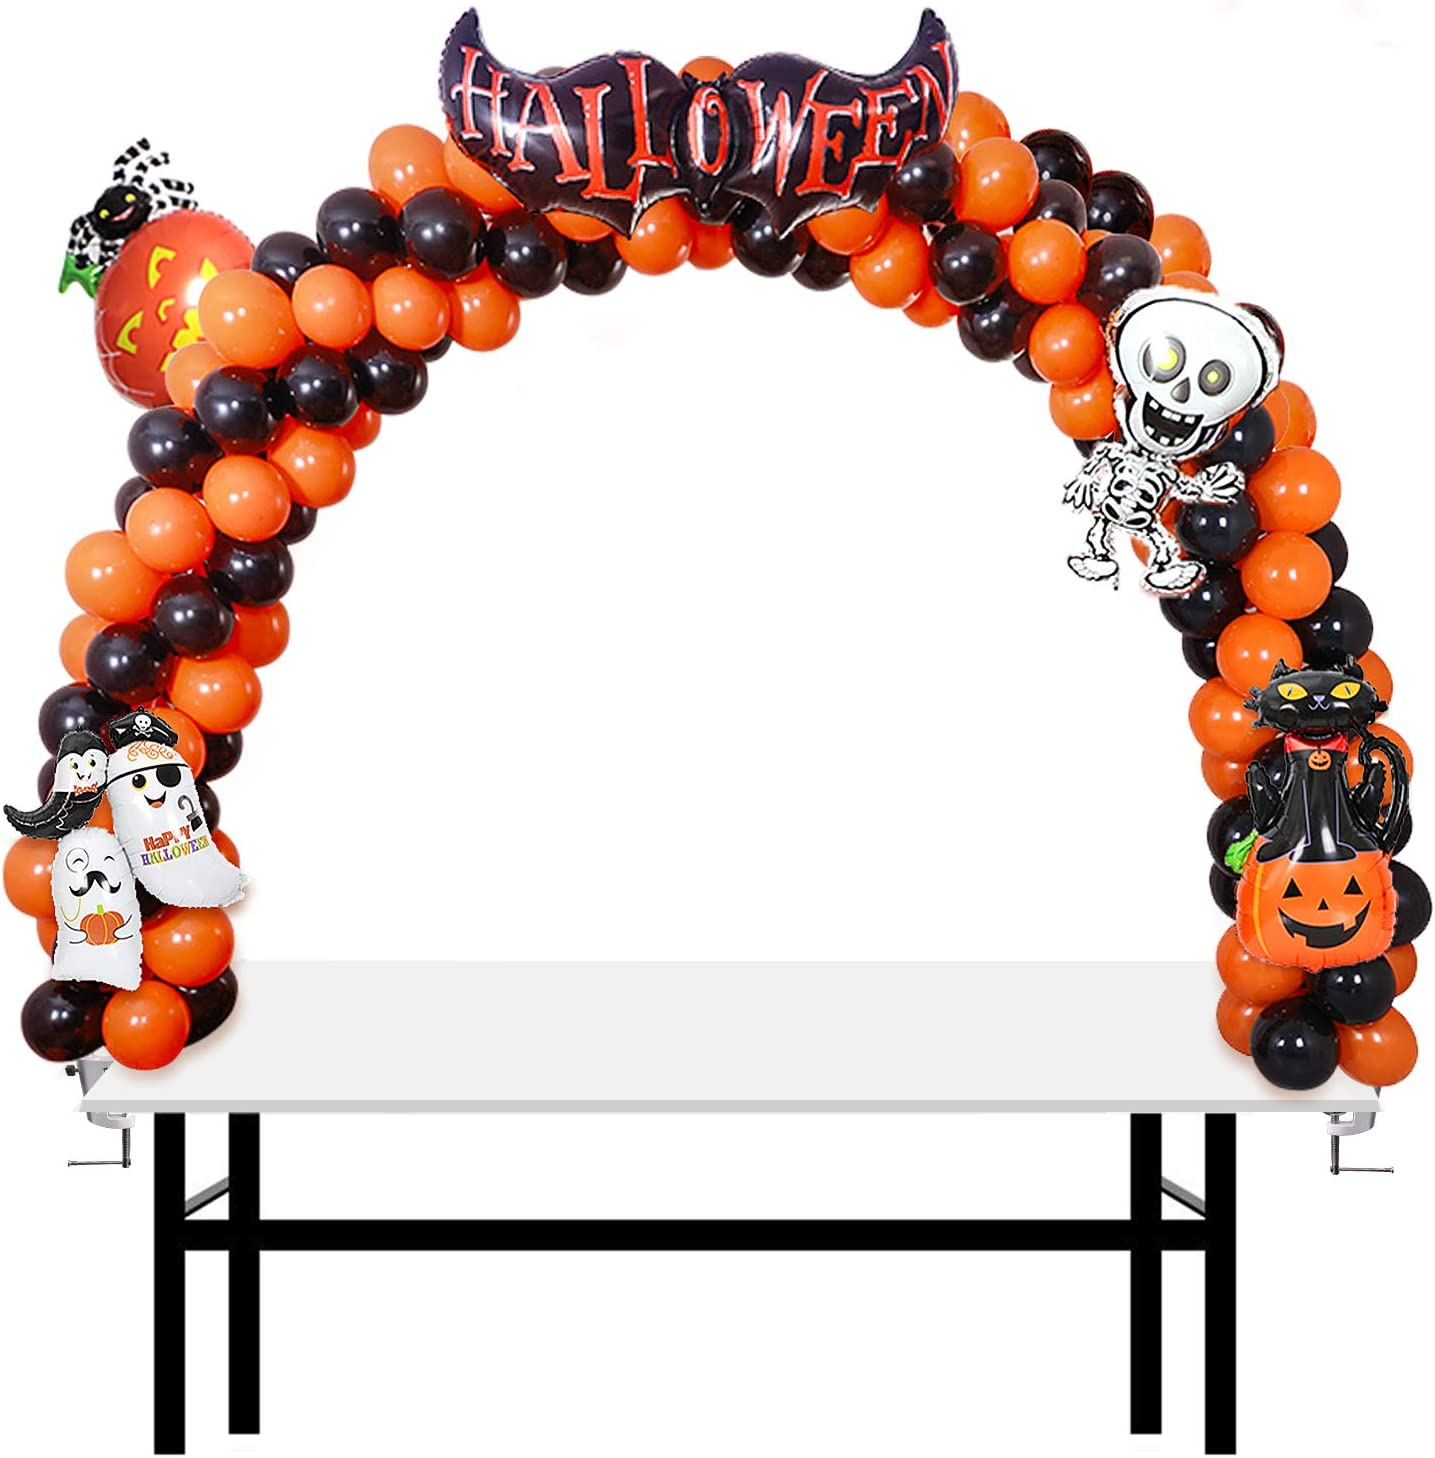 AXHJ 13Ft Adjustable Balloon Arch Stand Kit, New Reusable Table balloon arch kit with base High Strength Glass Fiber Pole for DIY Party Wedding Birthday Baby Shower Xmas Festival Decorations: Toys & Games